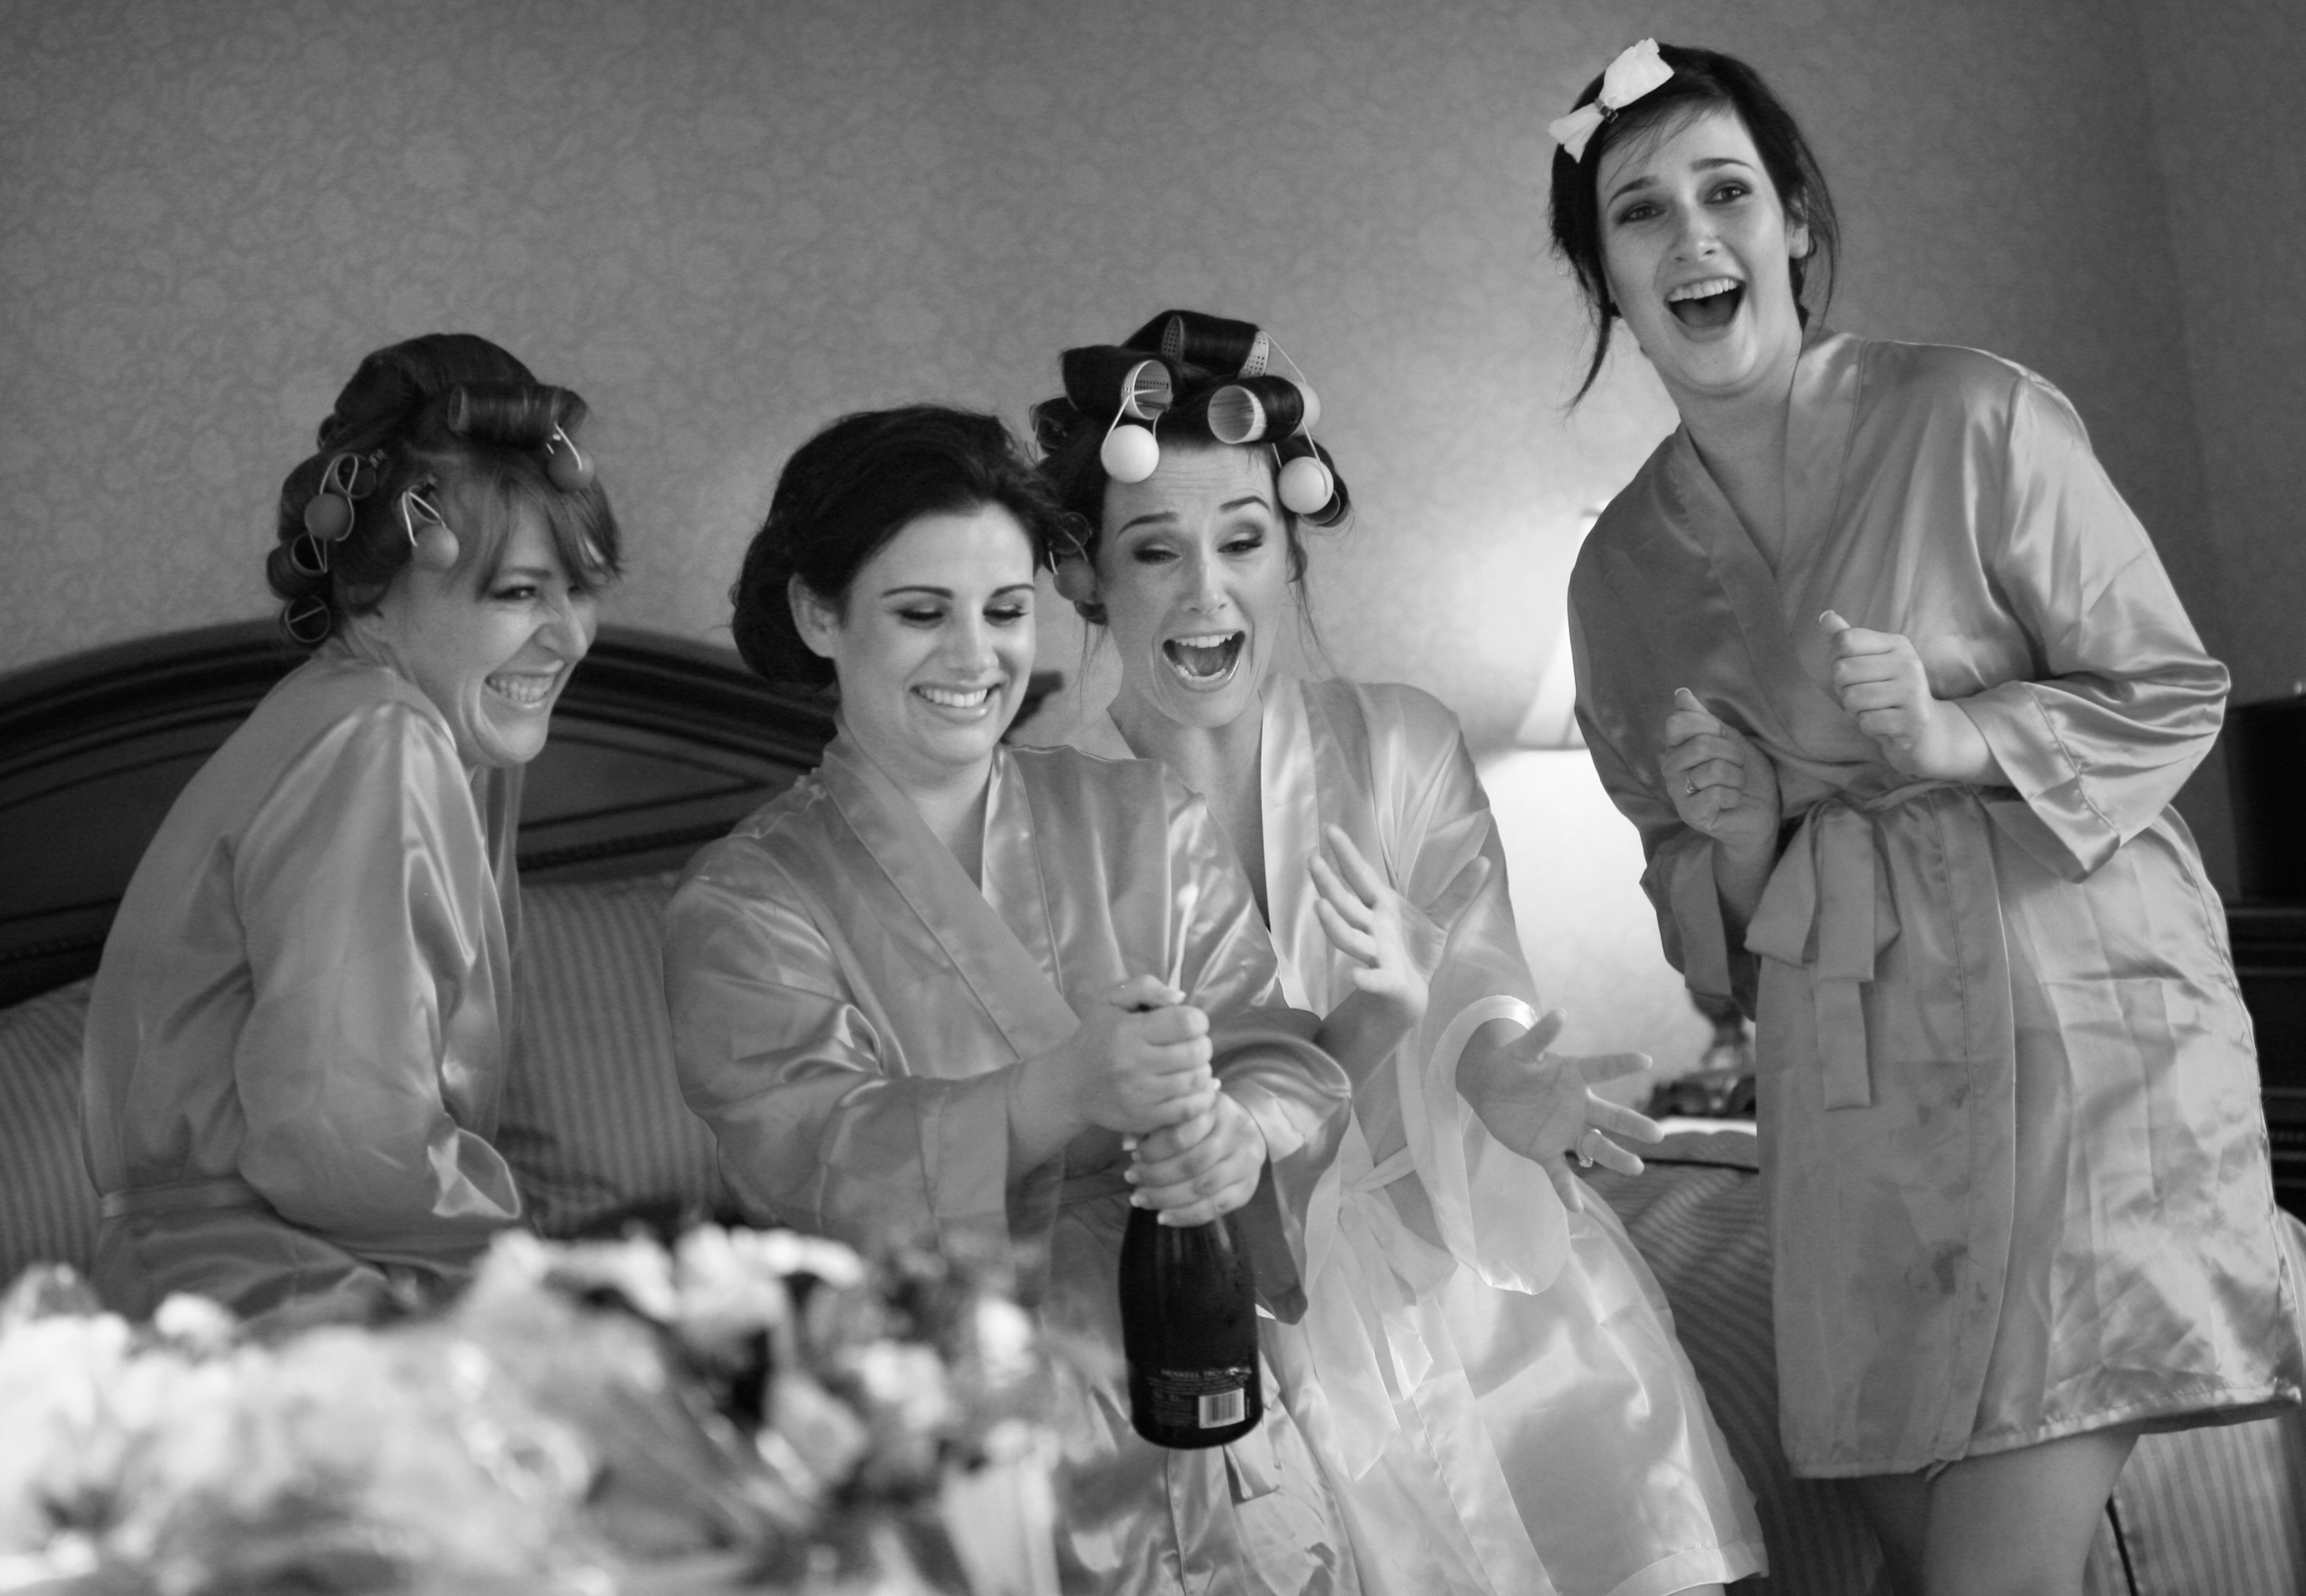 Bridesmaids in robes look on in excitement as one of them pops the cork on a champagne bottle